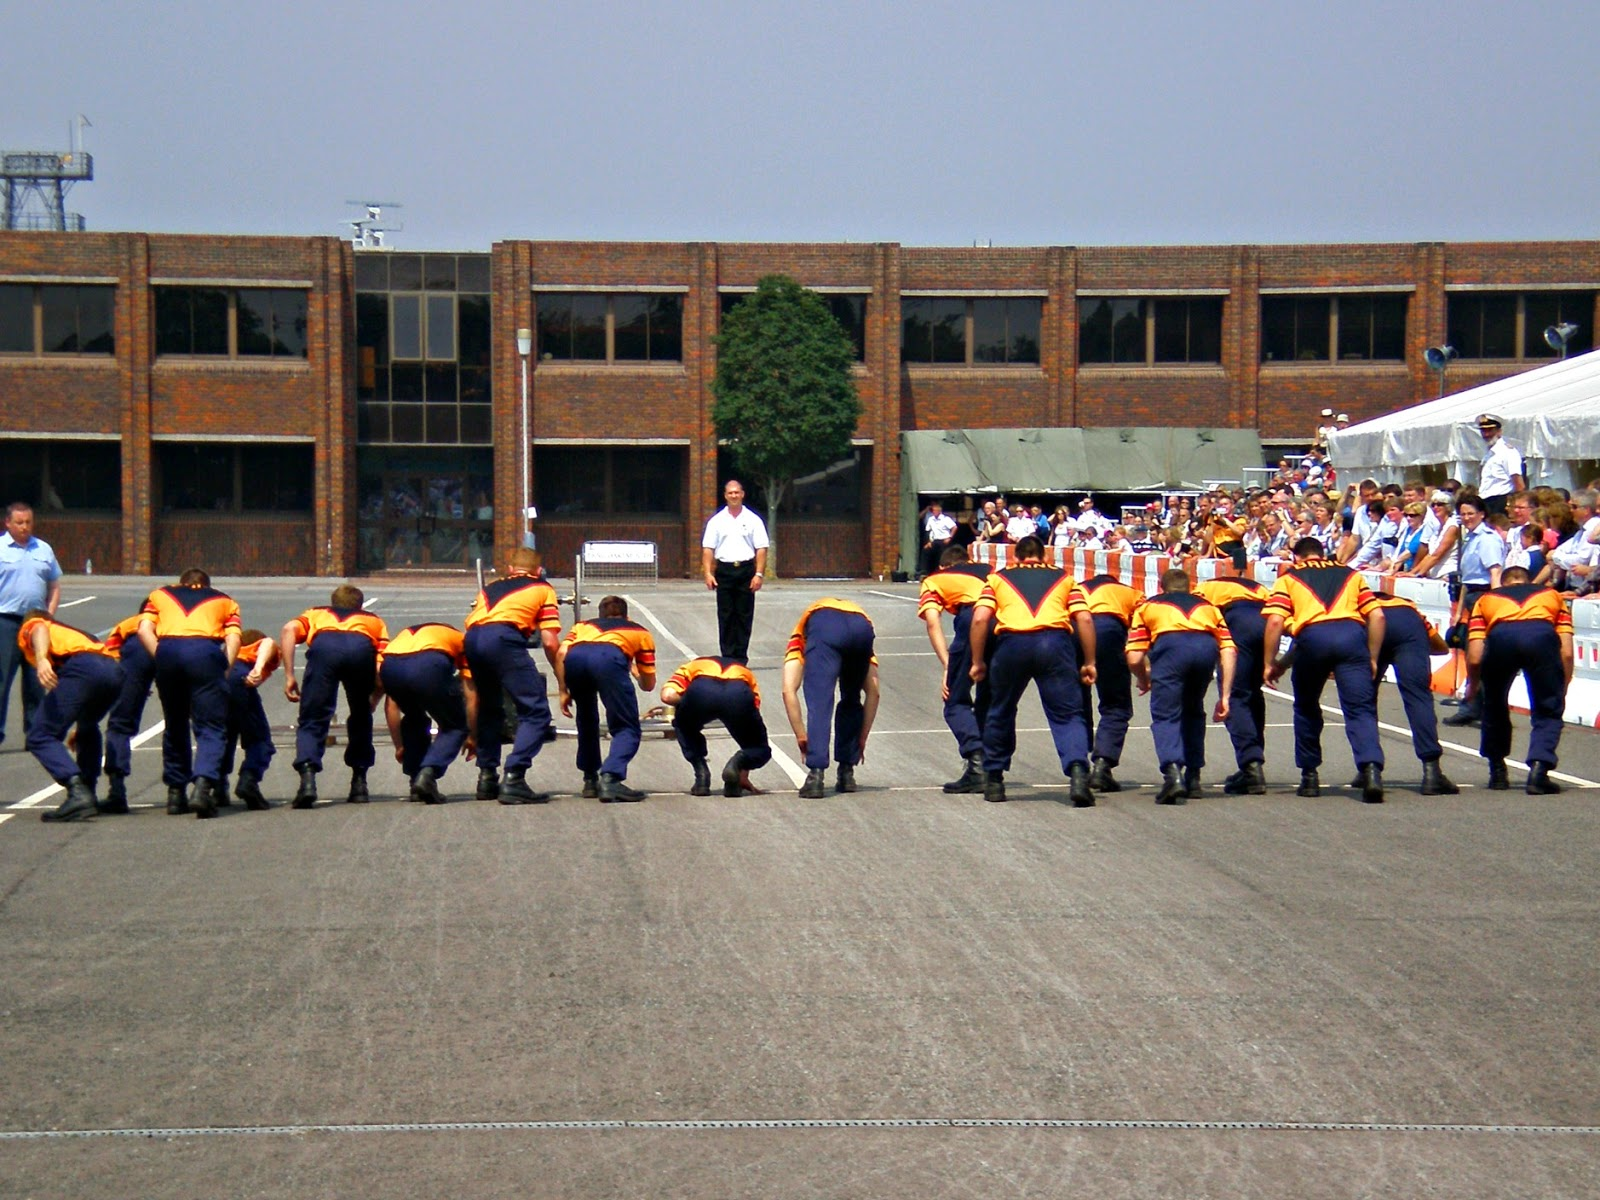 A crew of 18 field gunners line up on the start line